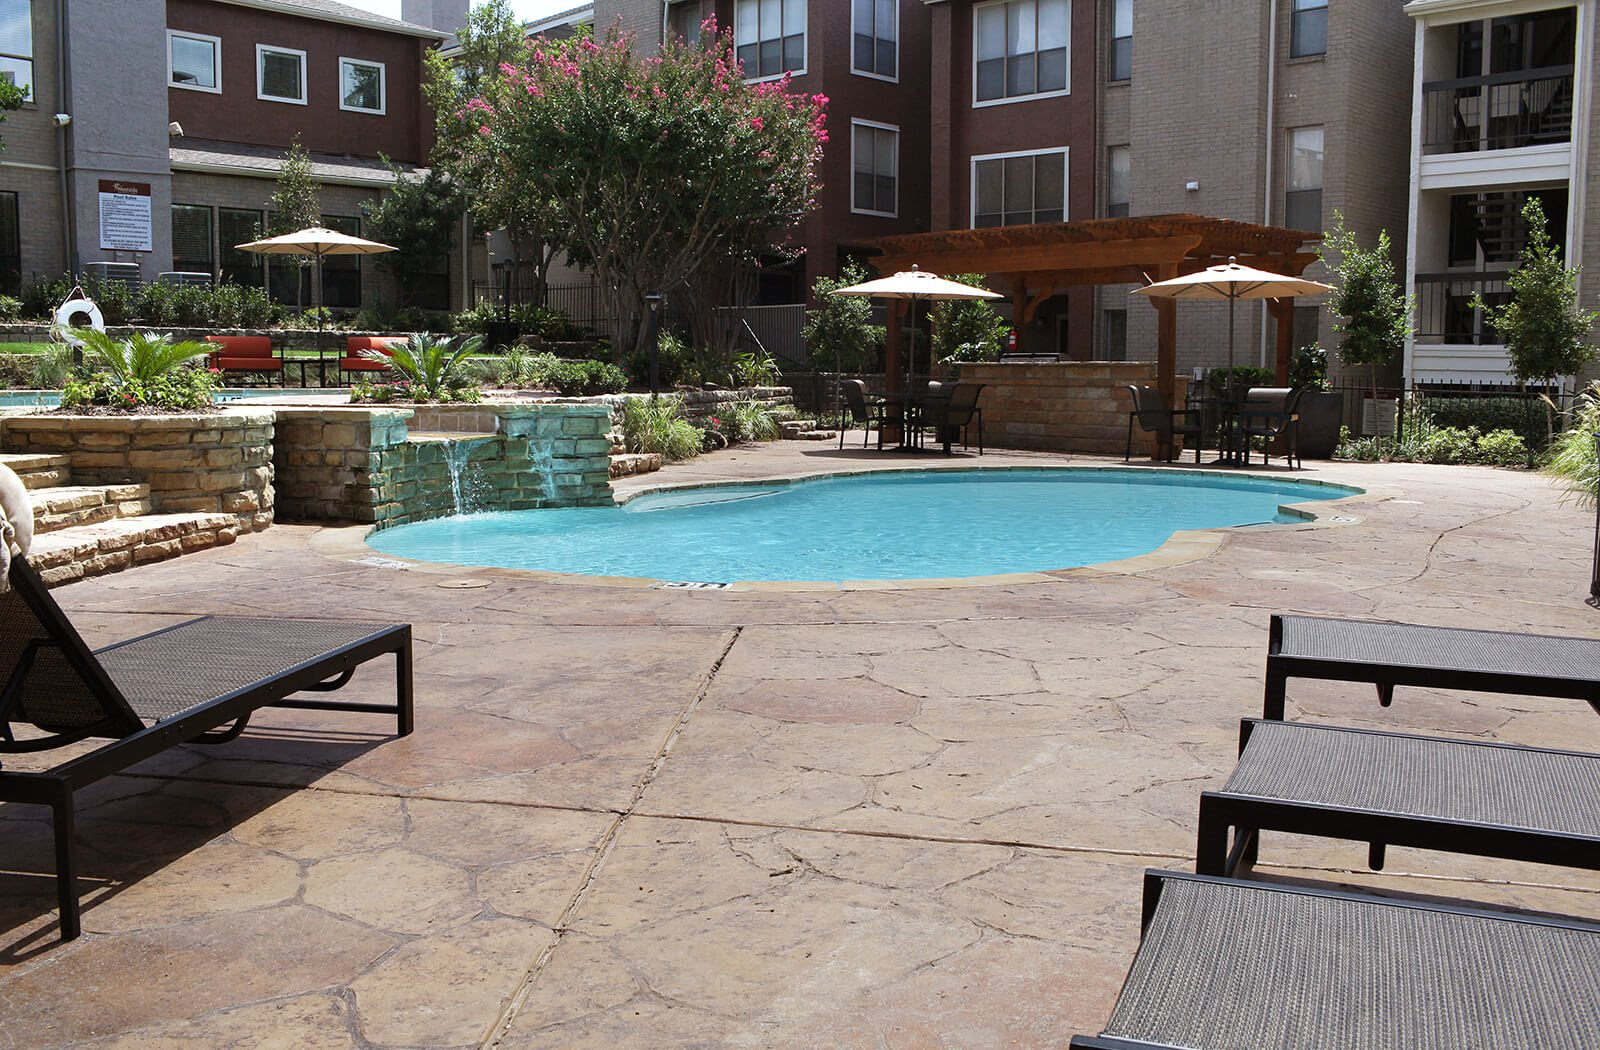 Awe Inspiring Apartments For Rent In Plano Tx The Westside Apartments Home Interior And Landscaping Ologienasavecom